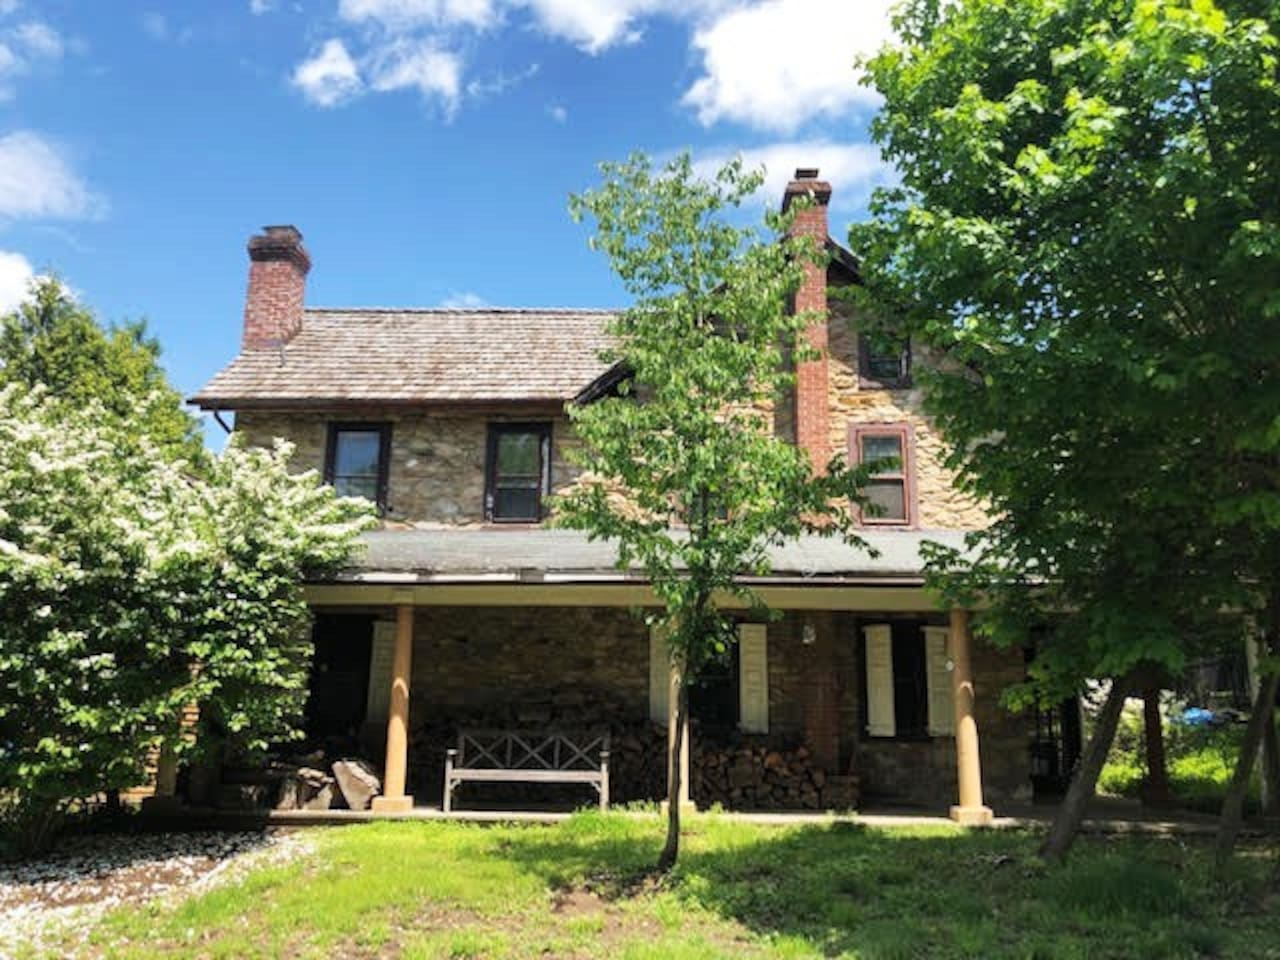 Front of the 1780's farmhouse in Bucks County/Lehigh County